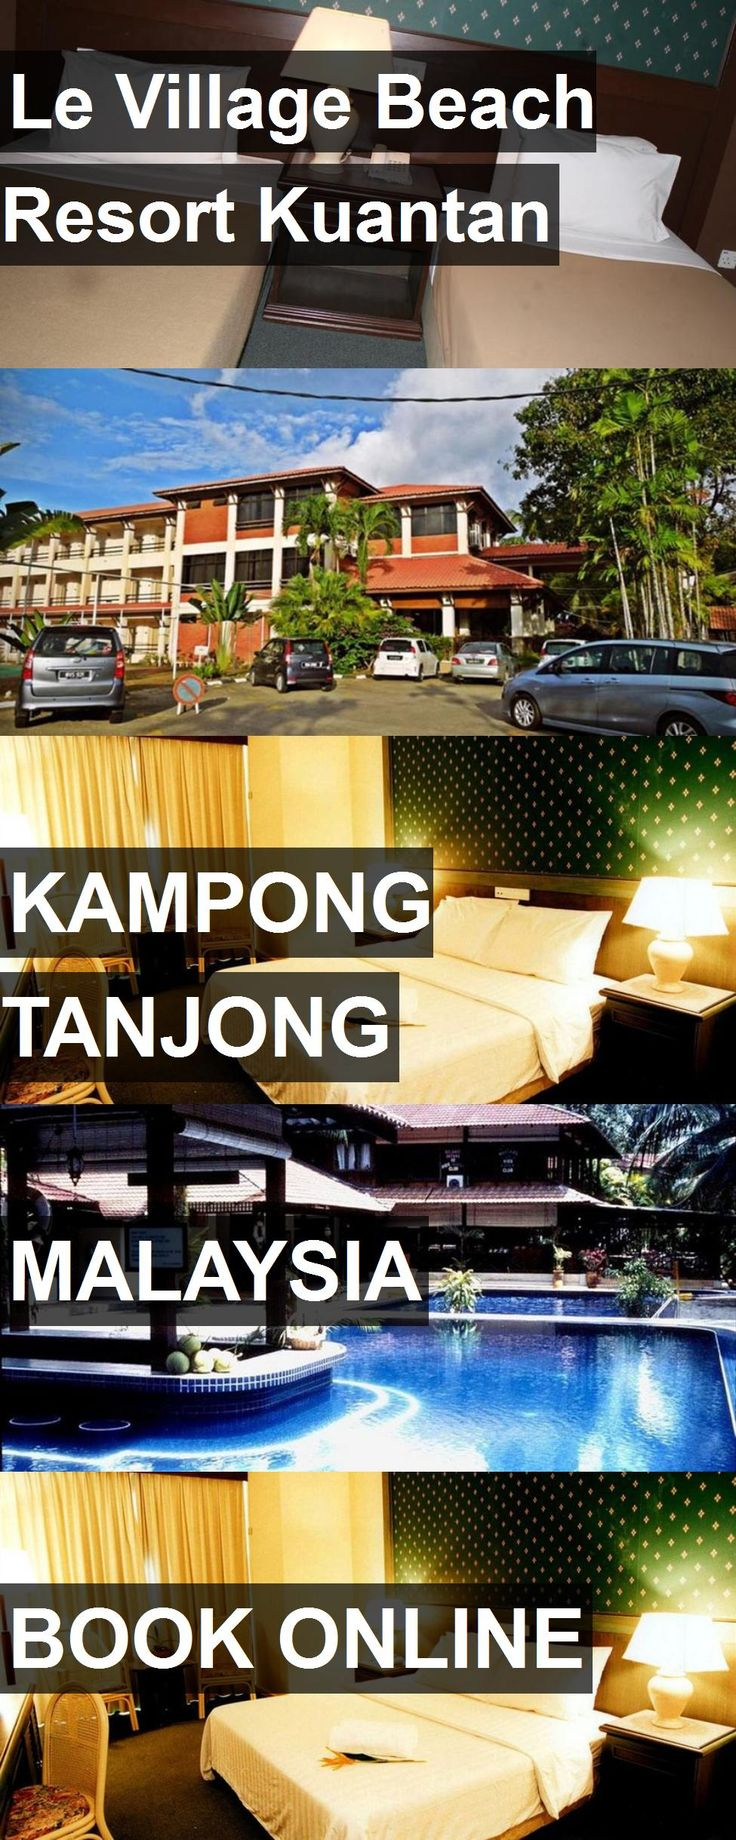 Hotel Le Village Beach Resort Kuantan in Kampong Tanjong, Malaysia. For more information, photos, reviews and best prices please follow the link. #Malaysia #KampongTanjong #travel #vacation #hotel